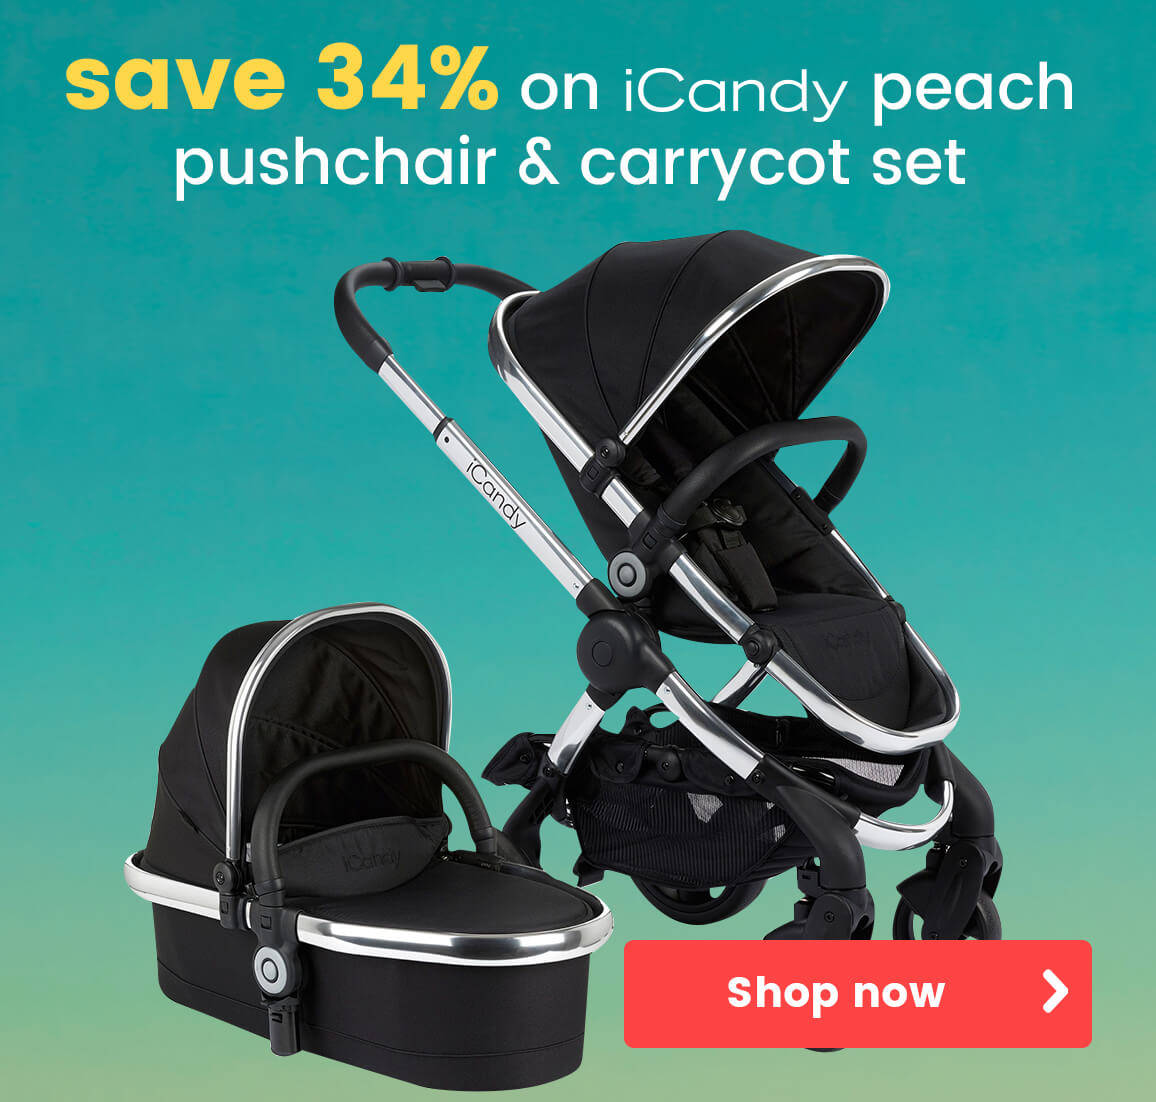 iCandy Peach pushchair and carrycot set